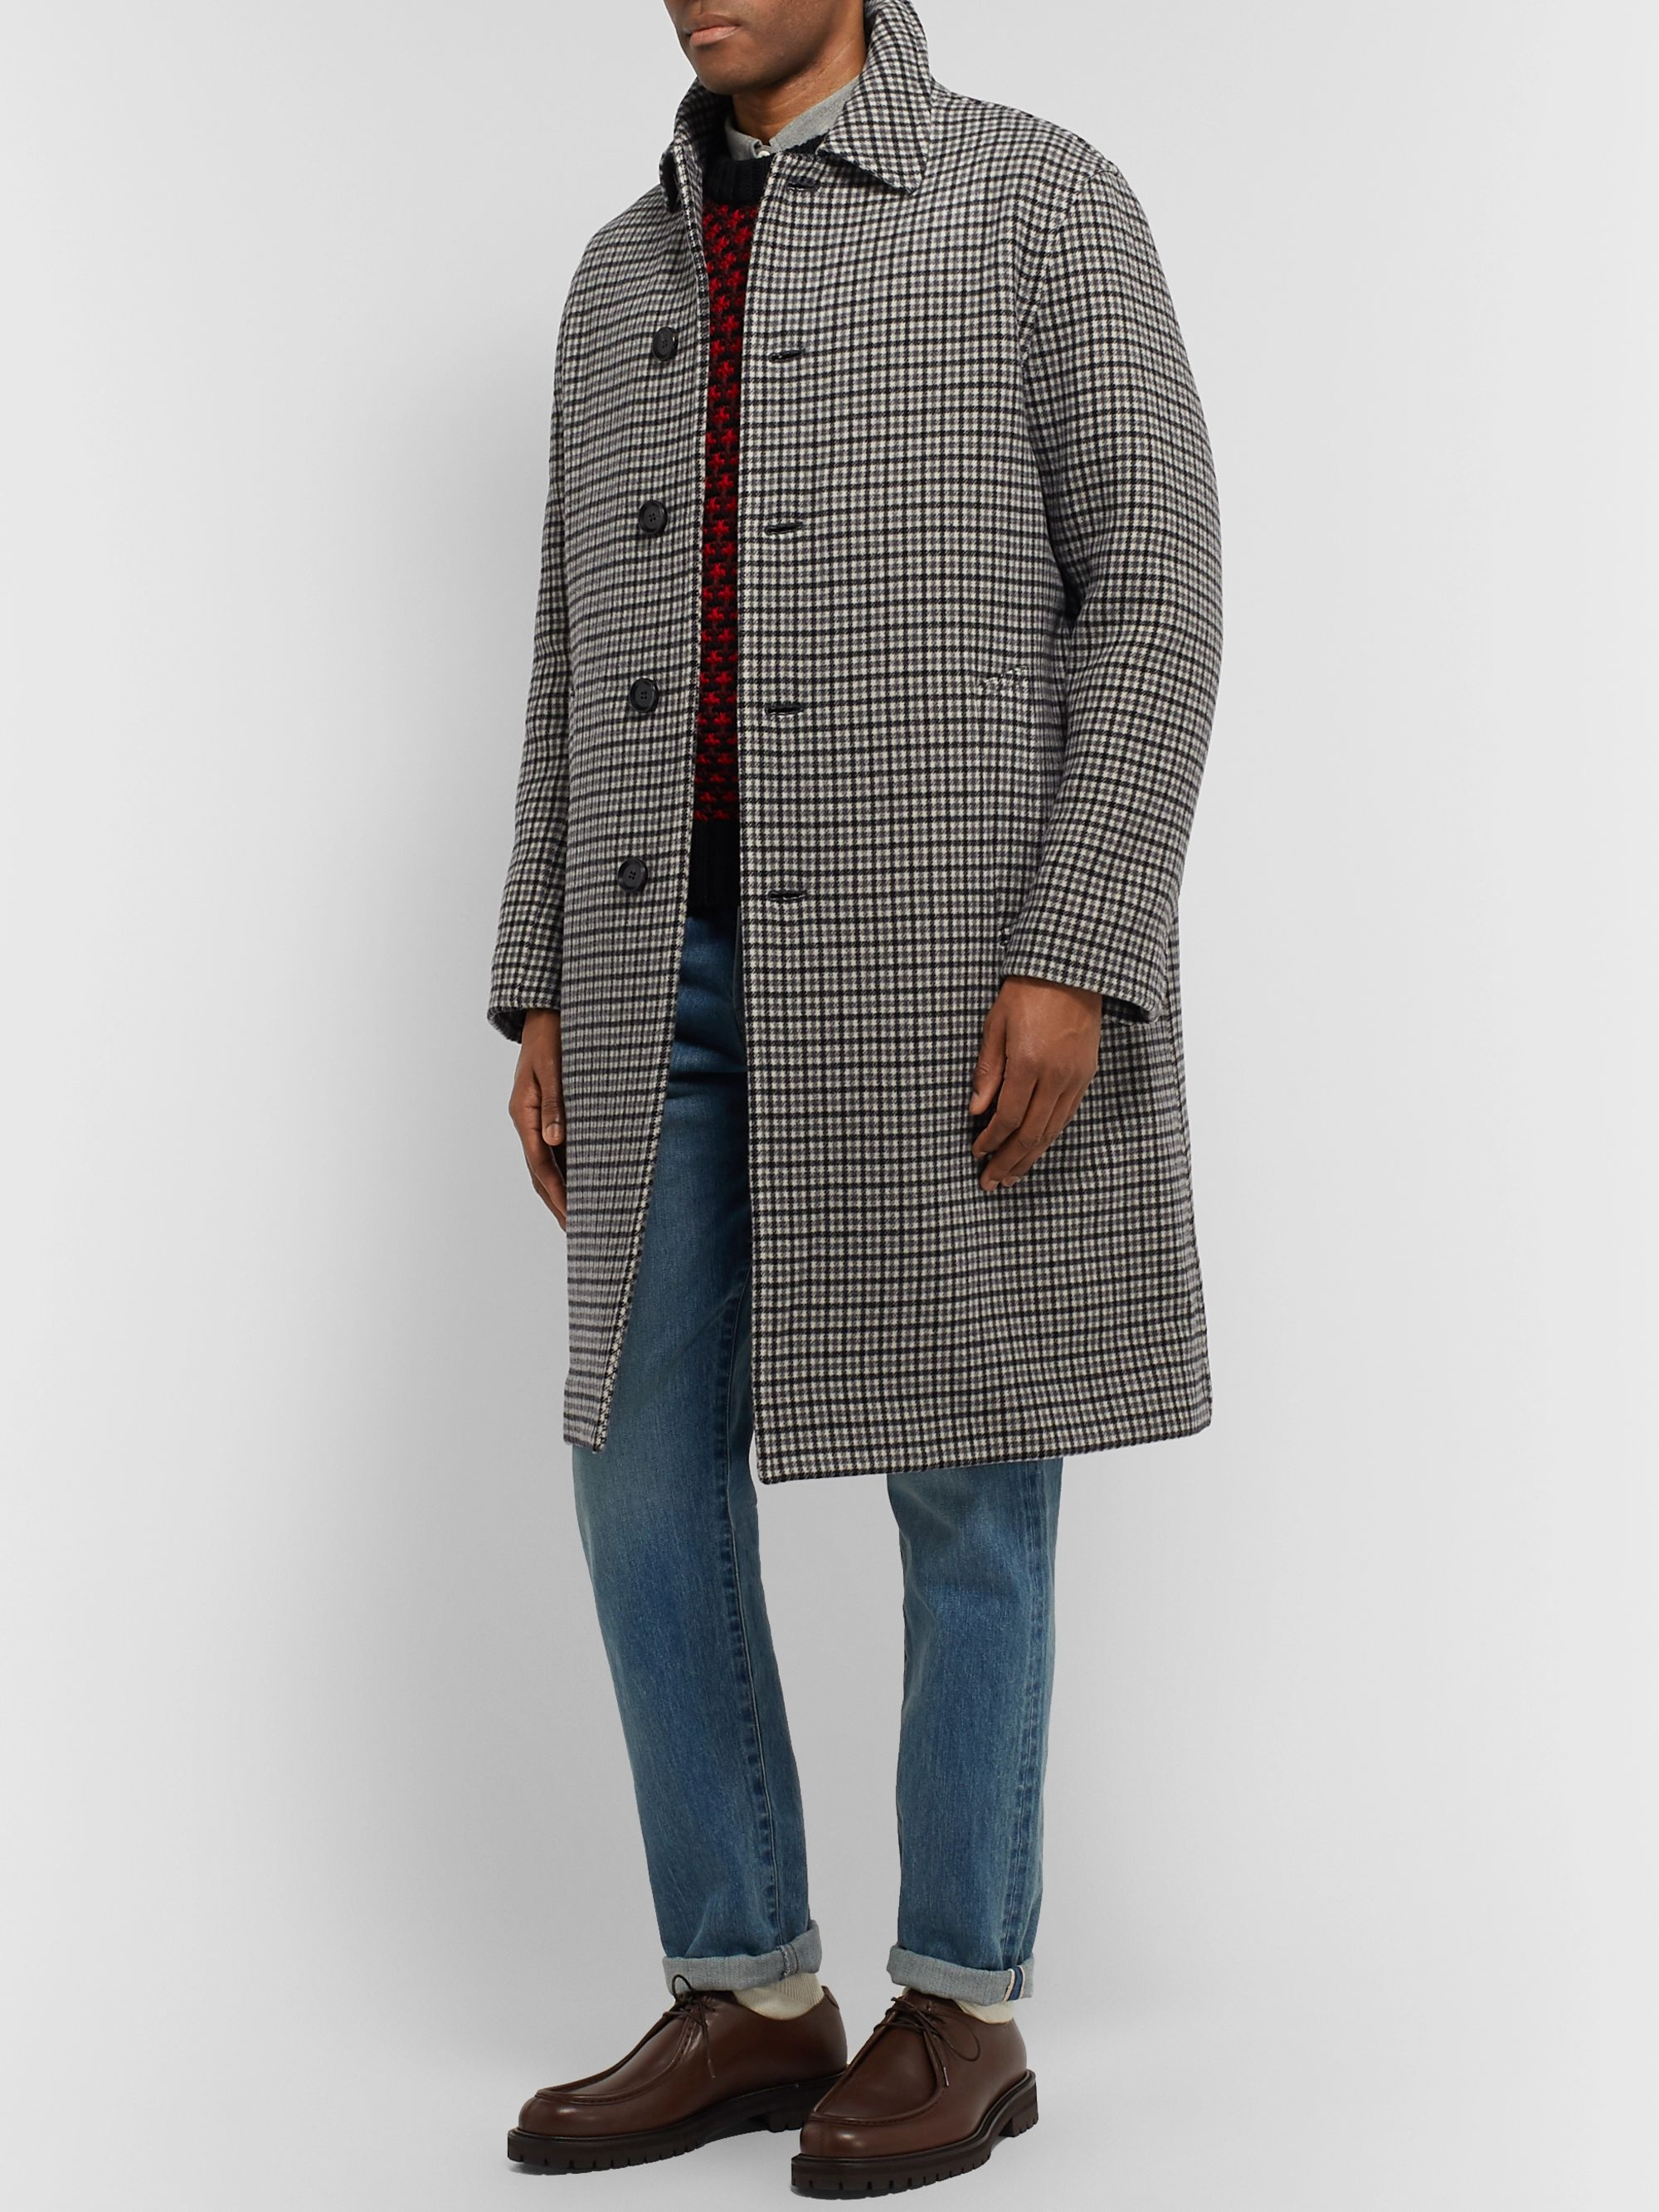 Mr P. Checked Wool Overcoat